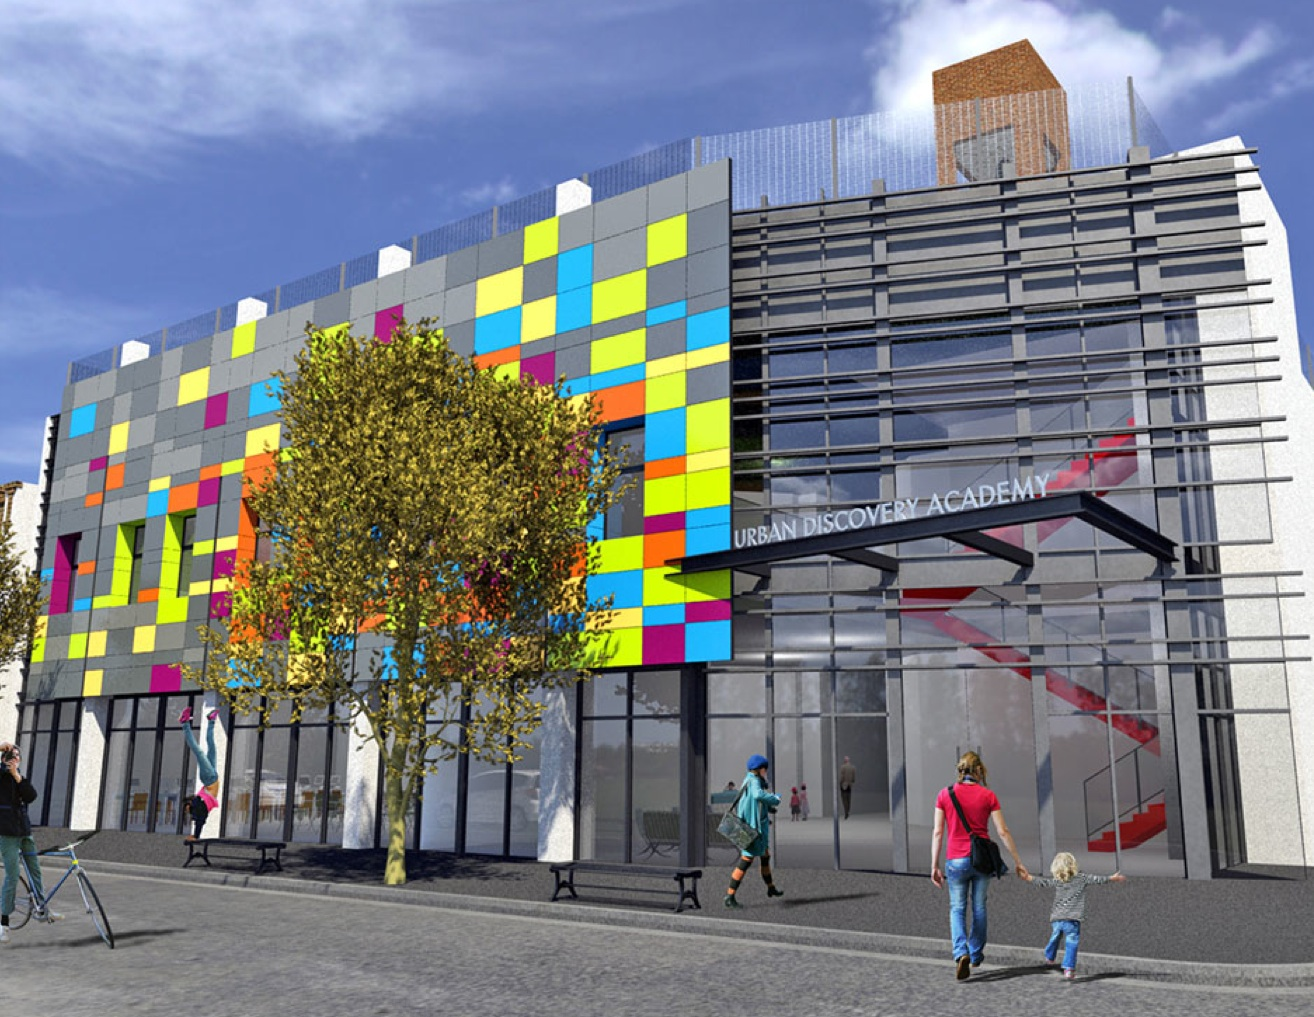 Urban Discovery Academy rendering